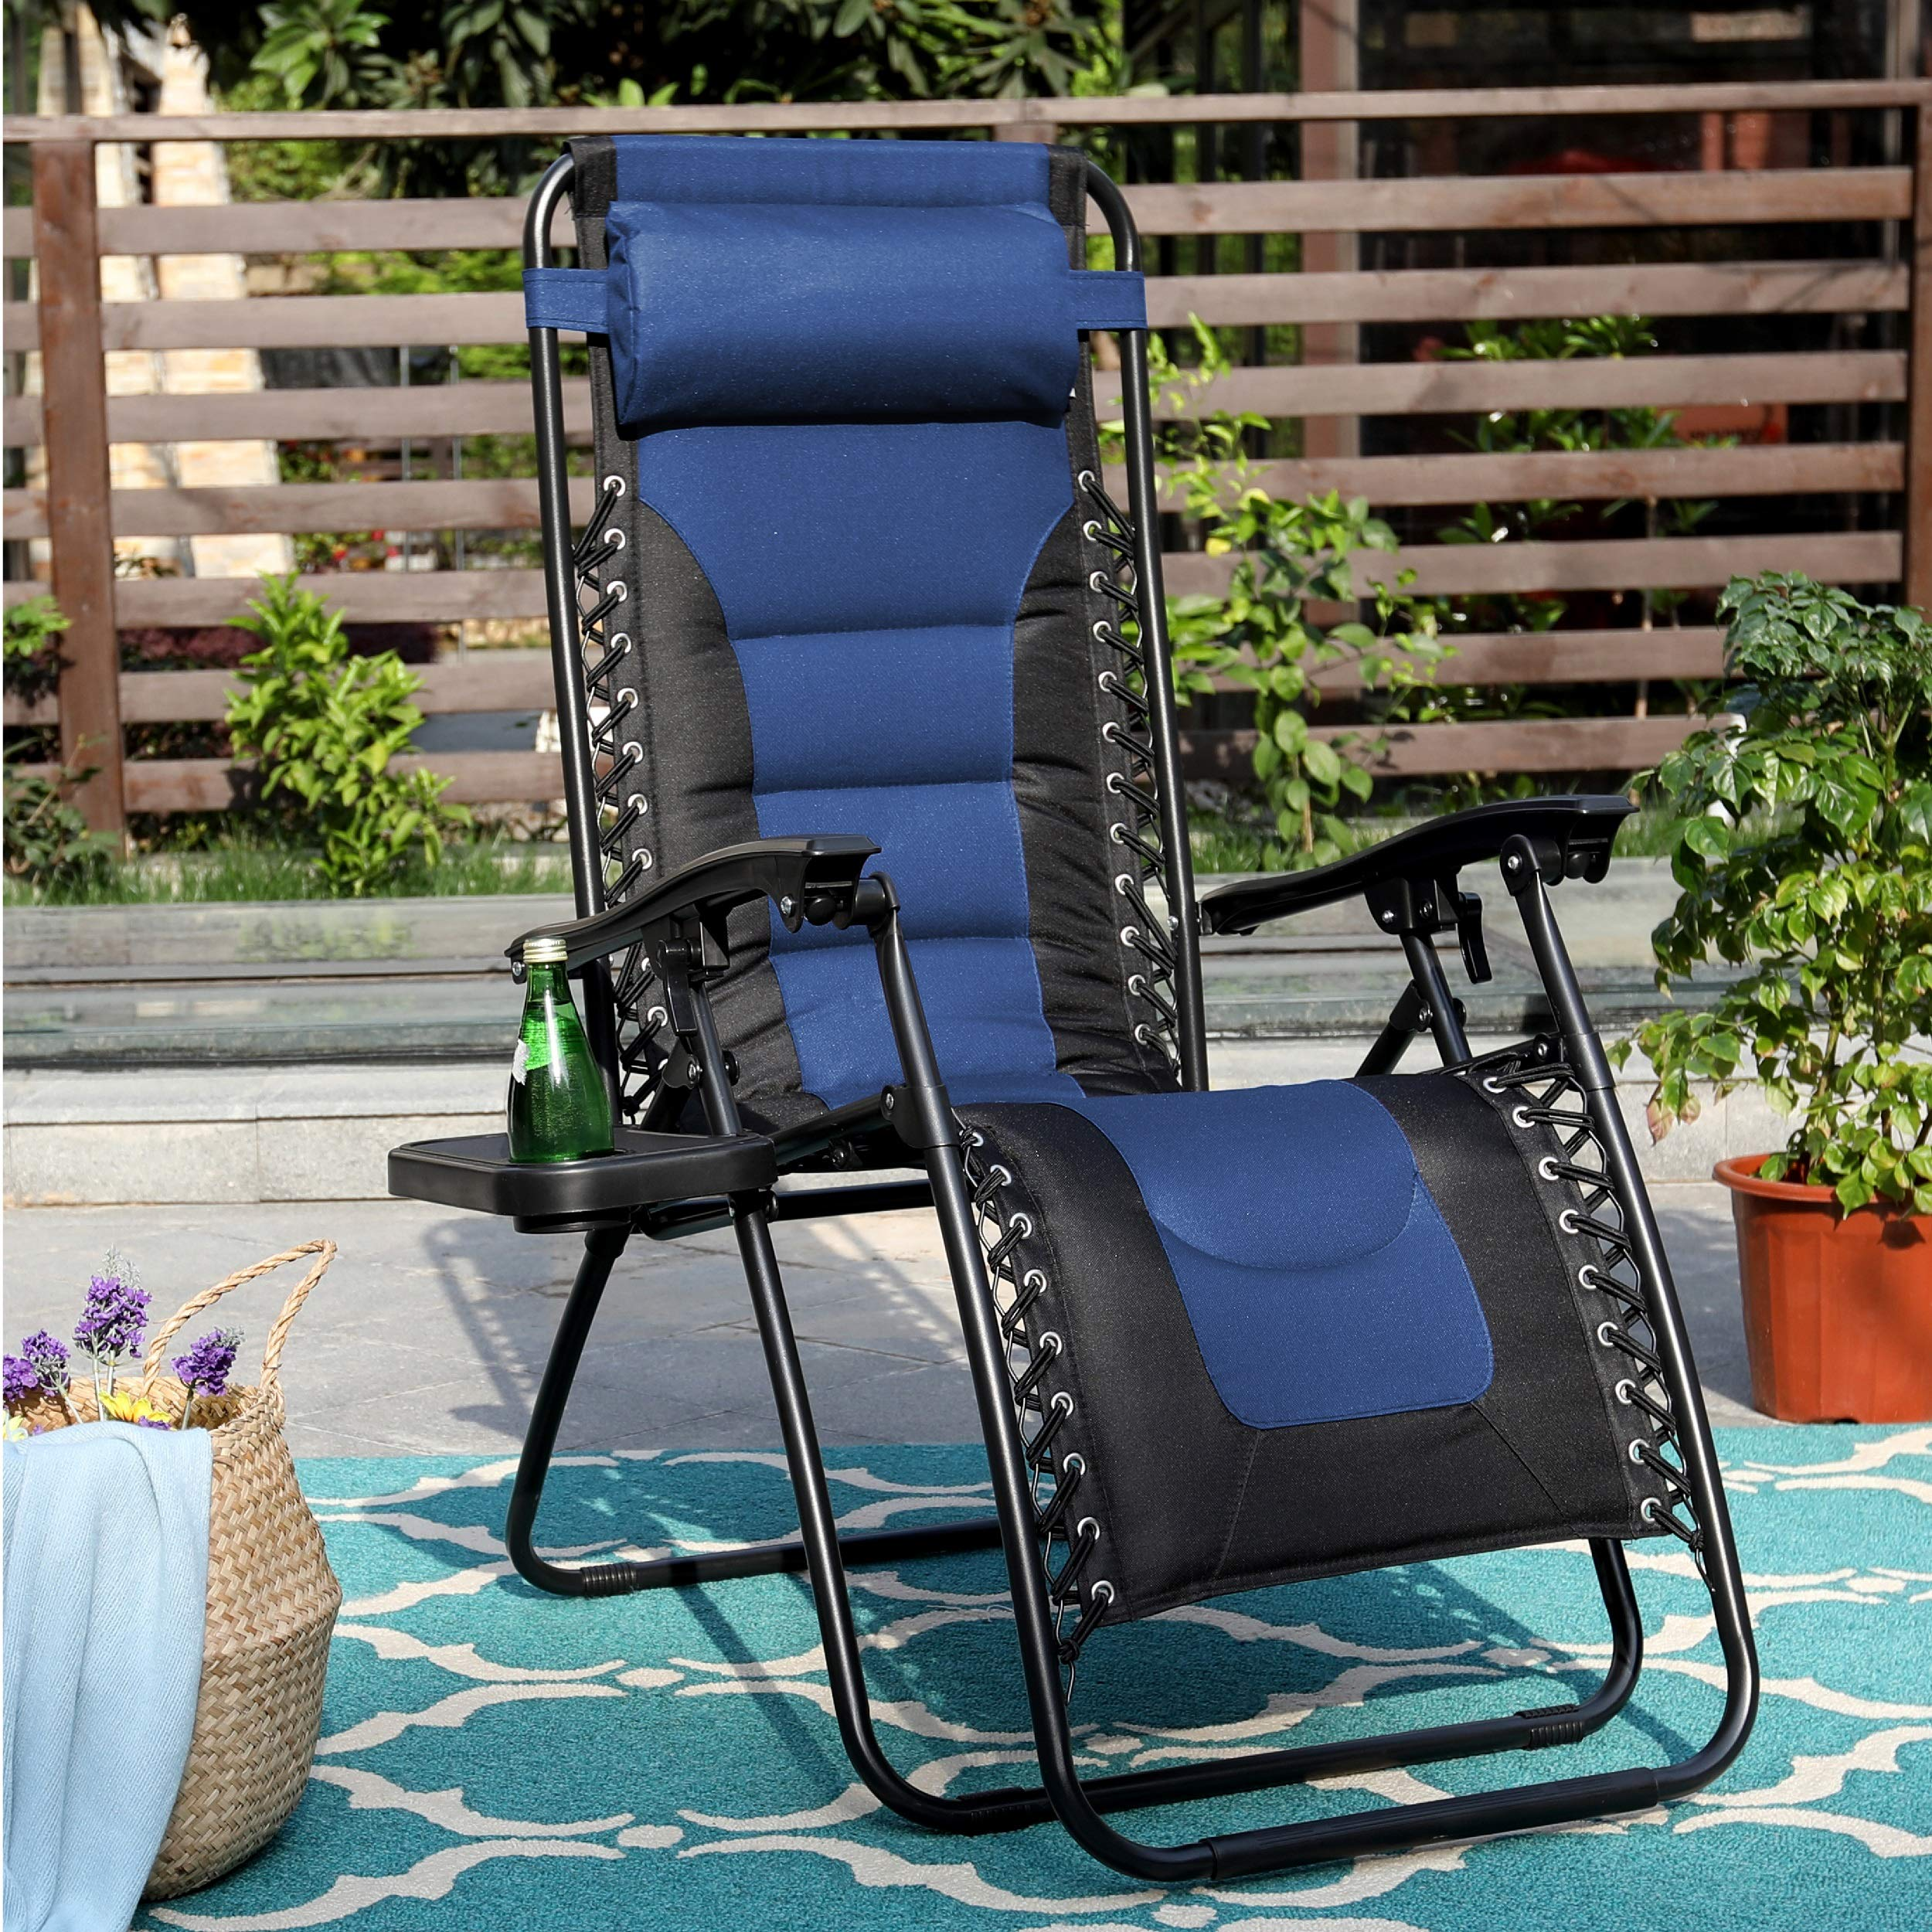 PHI VILLA Zero Gravity Chair Padded Recliner Adjustable Lounge Chair with Free Cup Holder (Blue) by PHI VILLA